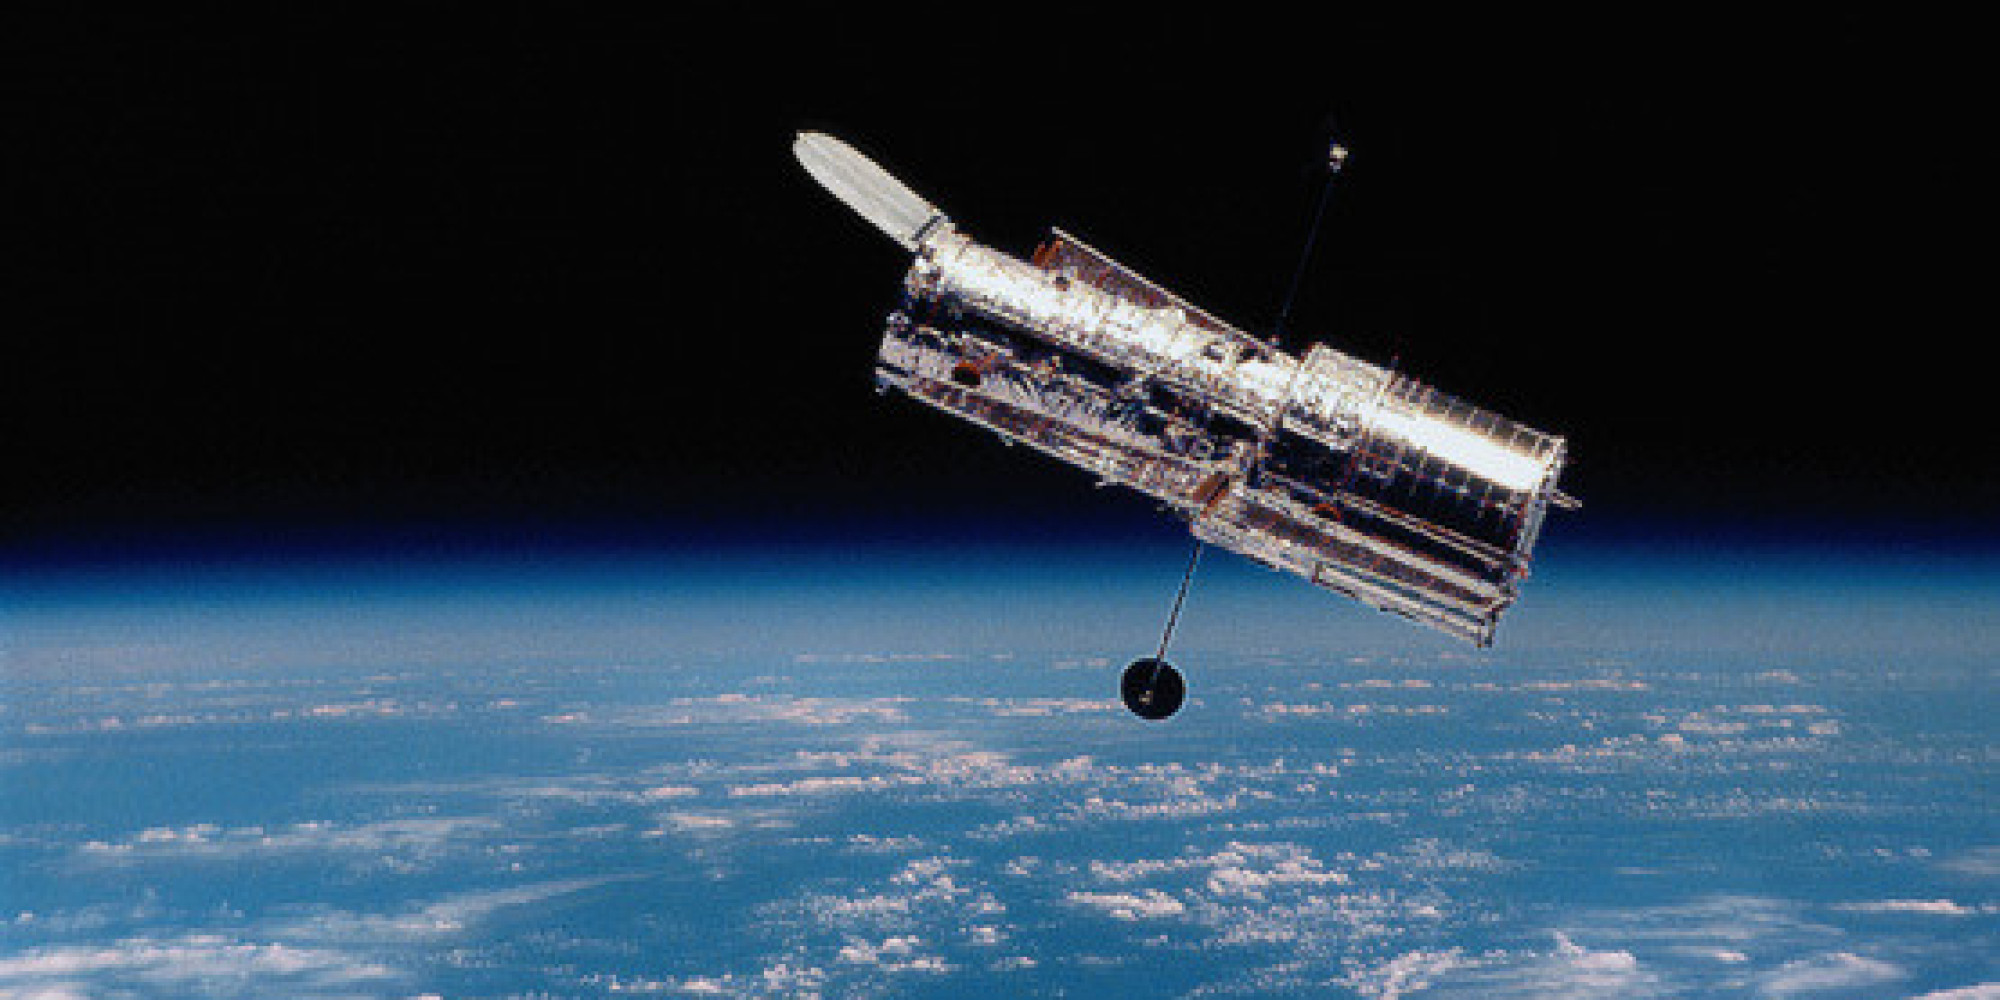 an analysis of the hubble space telescope Report on the hubble space telescope report on the hubble space telescope 11 november 2016 law telescope was created by crow testament analysis.